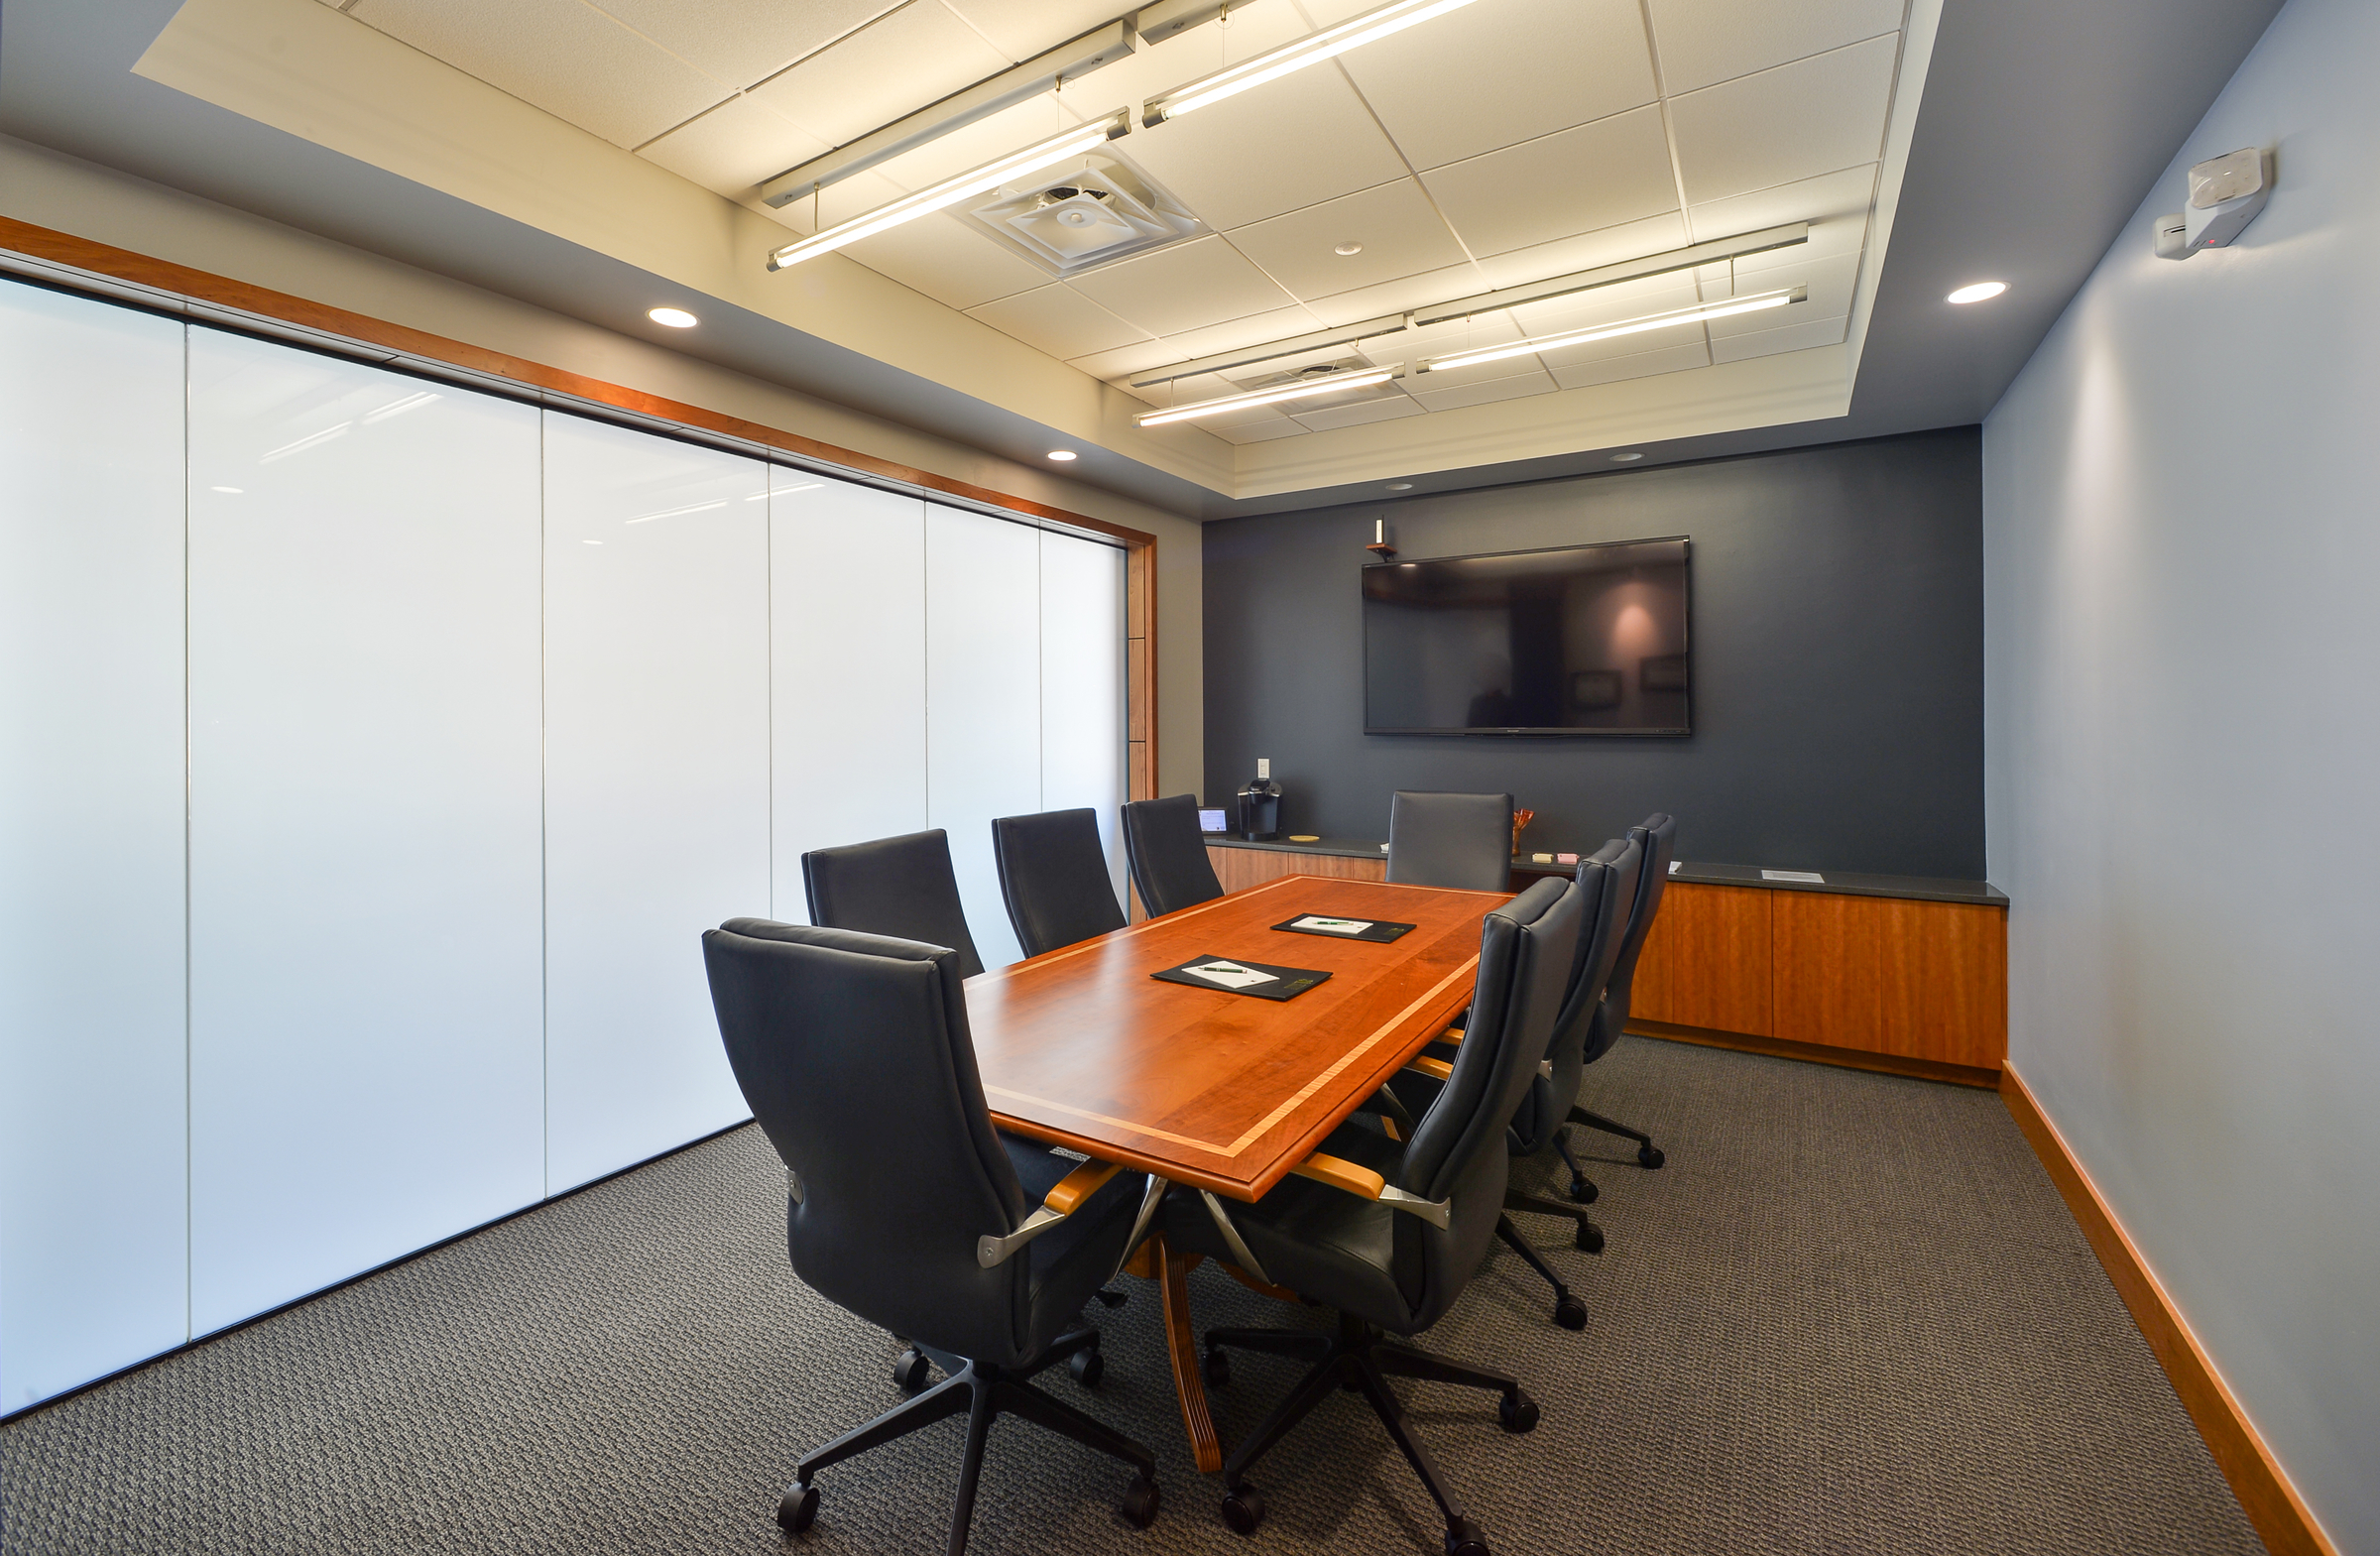 This interior fit up was intended to provide an upscale and contemporary environment to signify the vision and progression of Lake Sunapee Bank and Charter Trust within the Upper Valley.